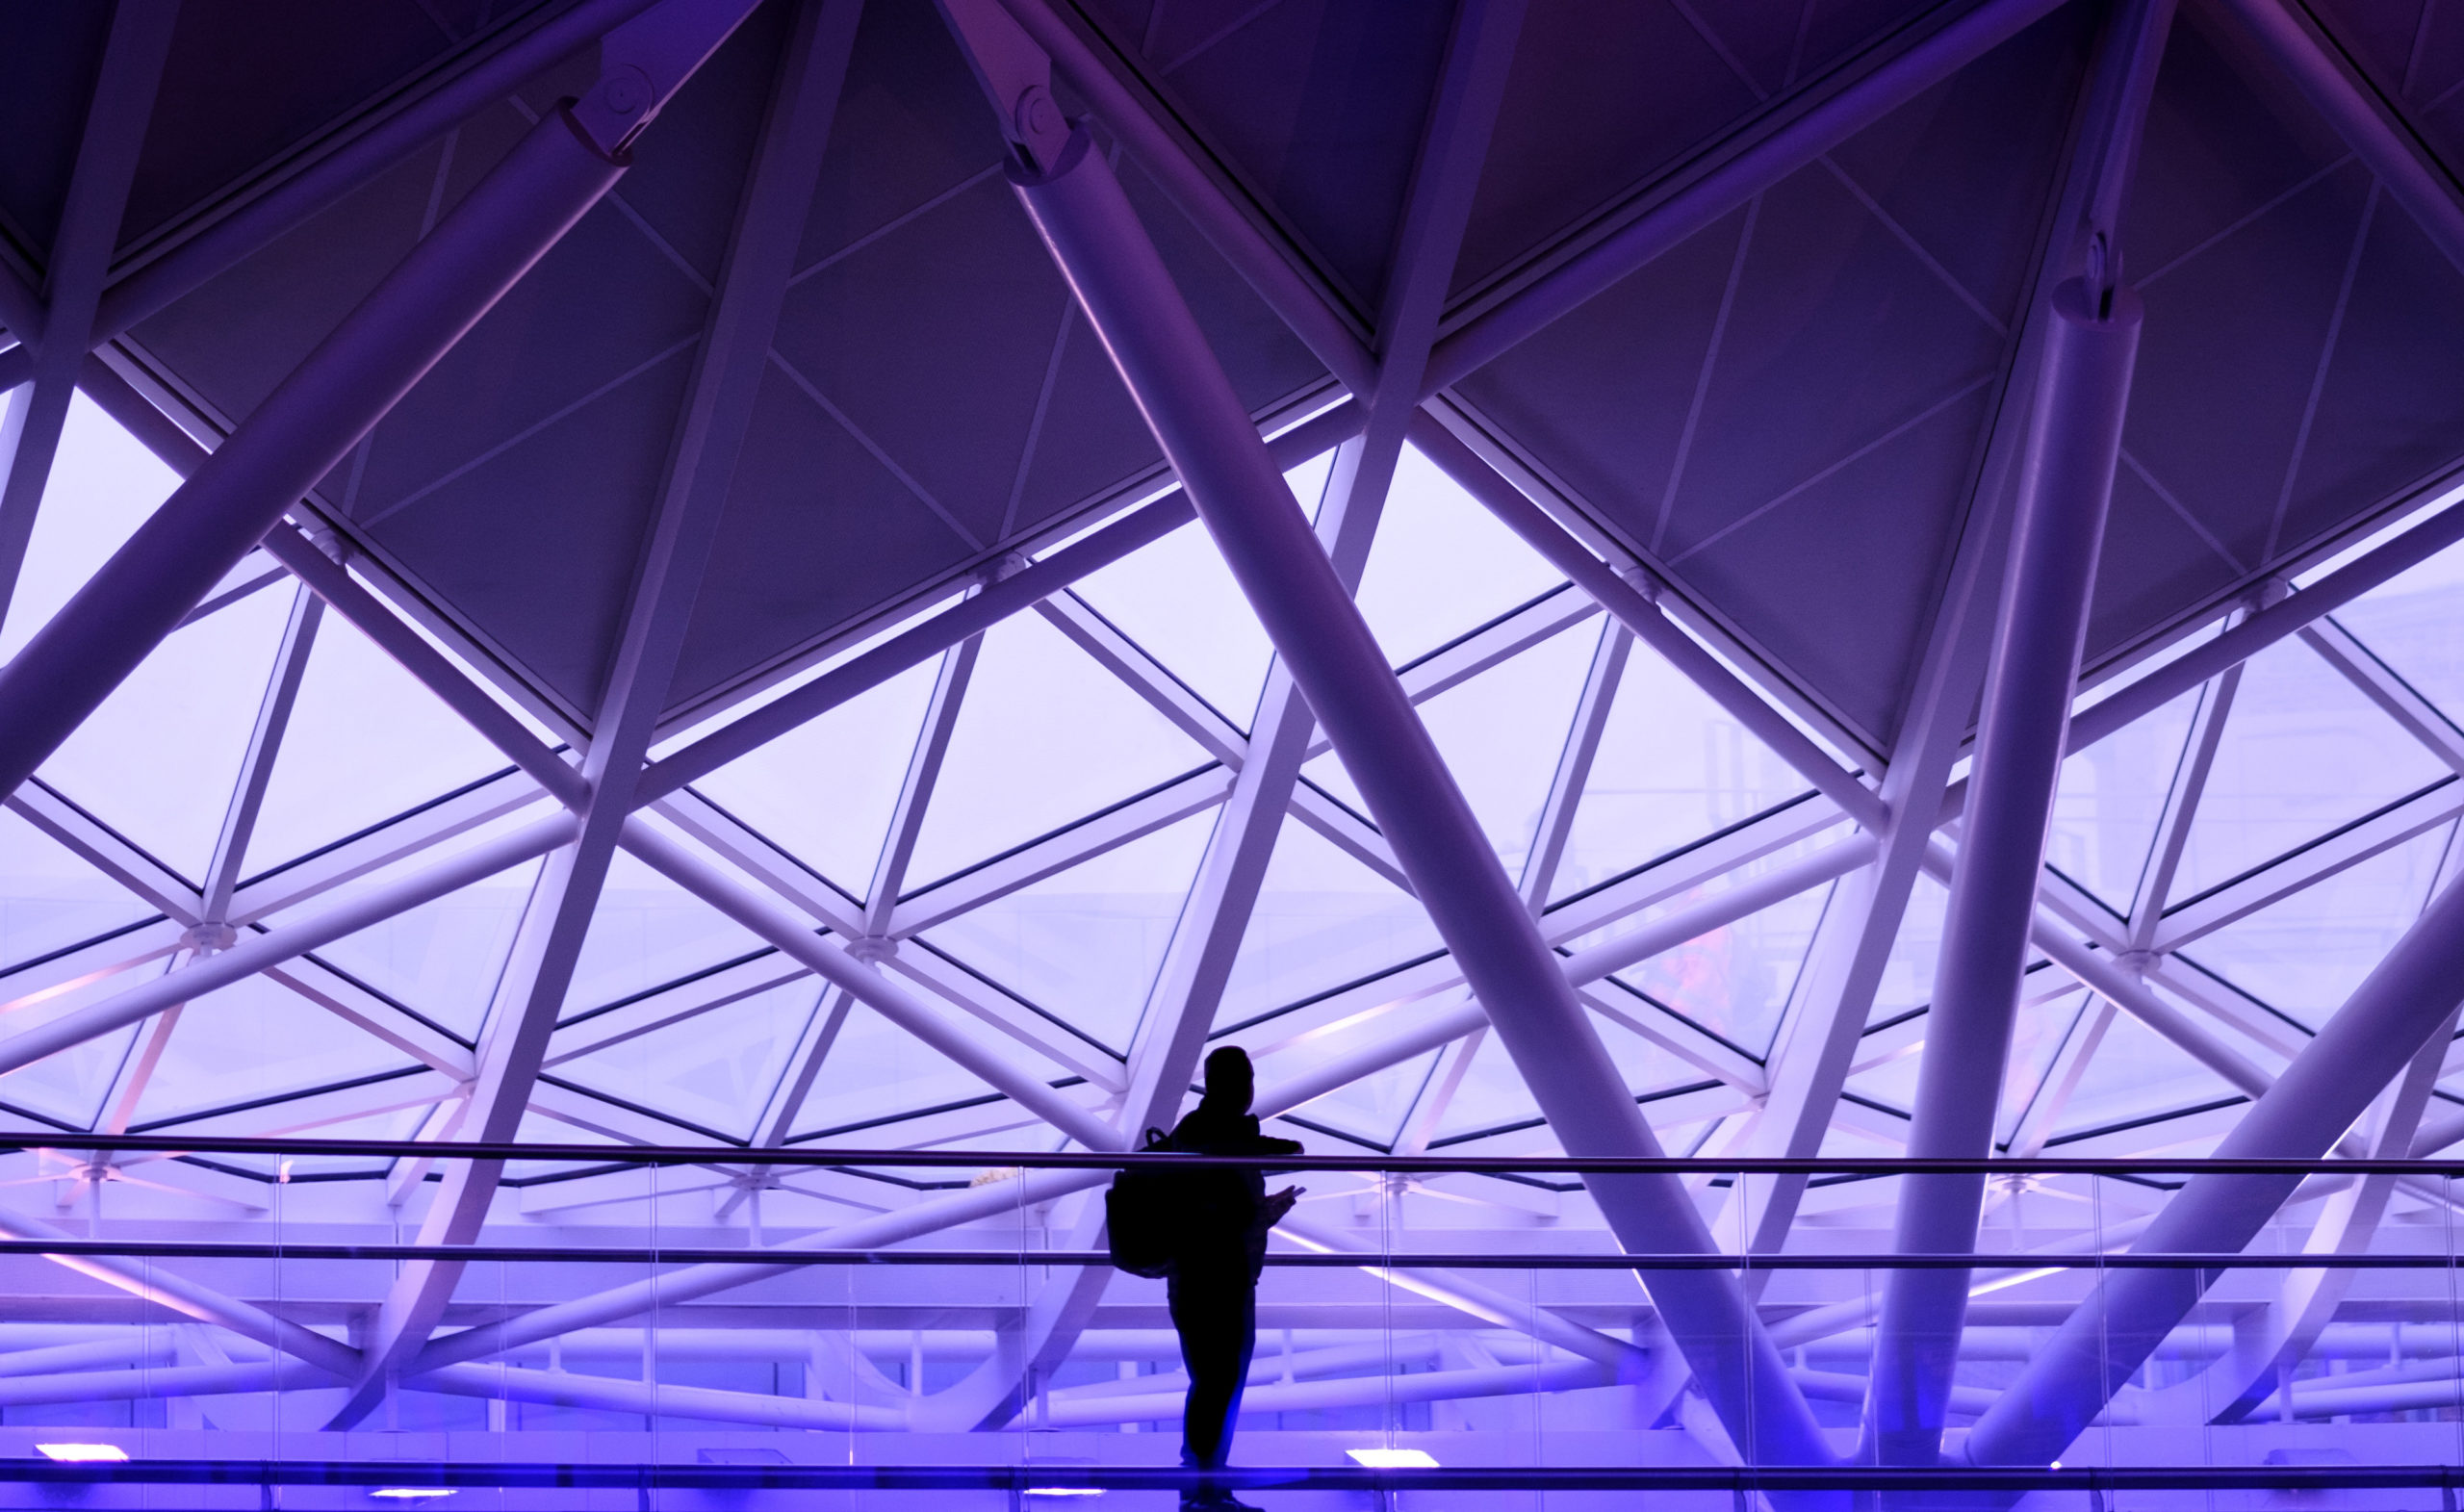 Person standing in purple room with windows